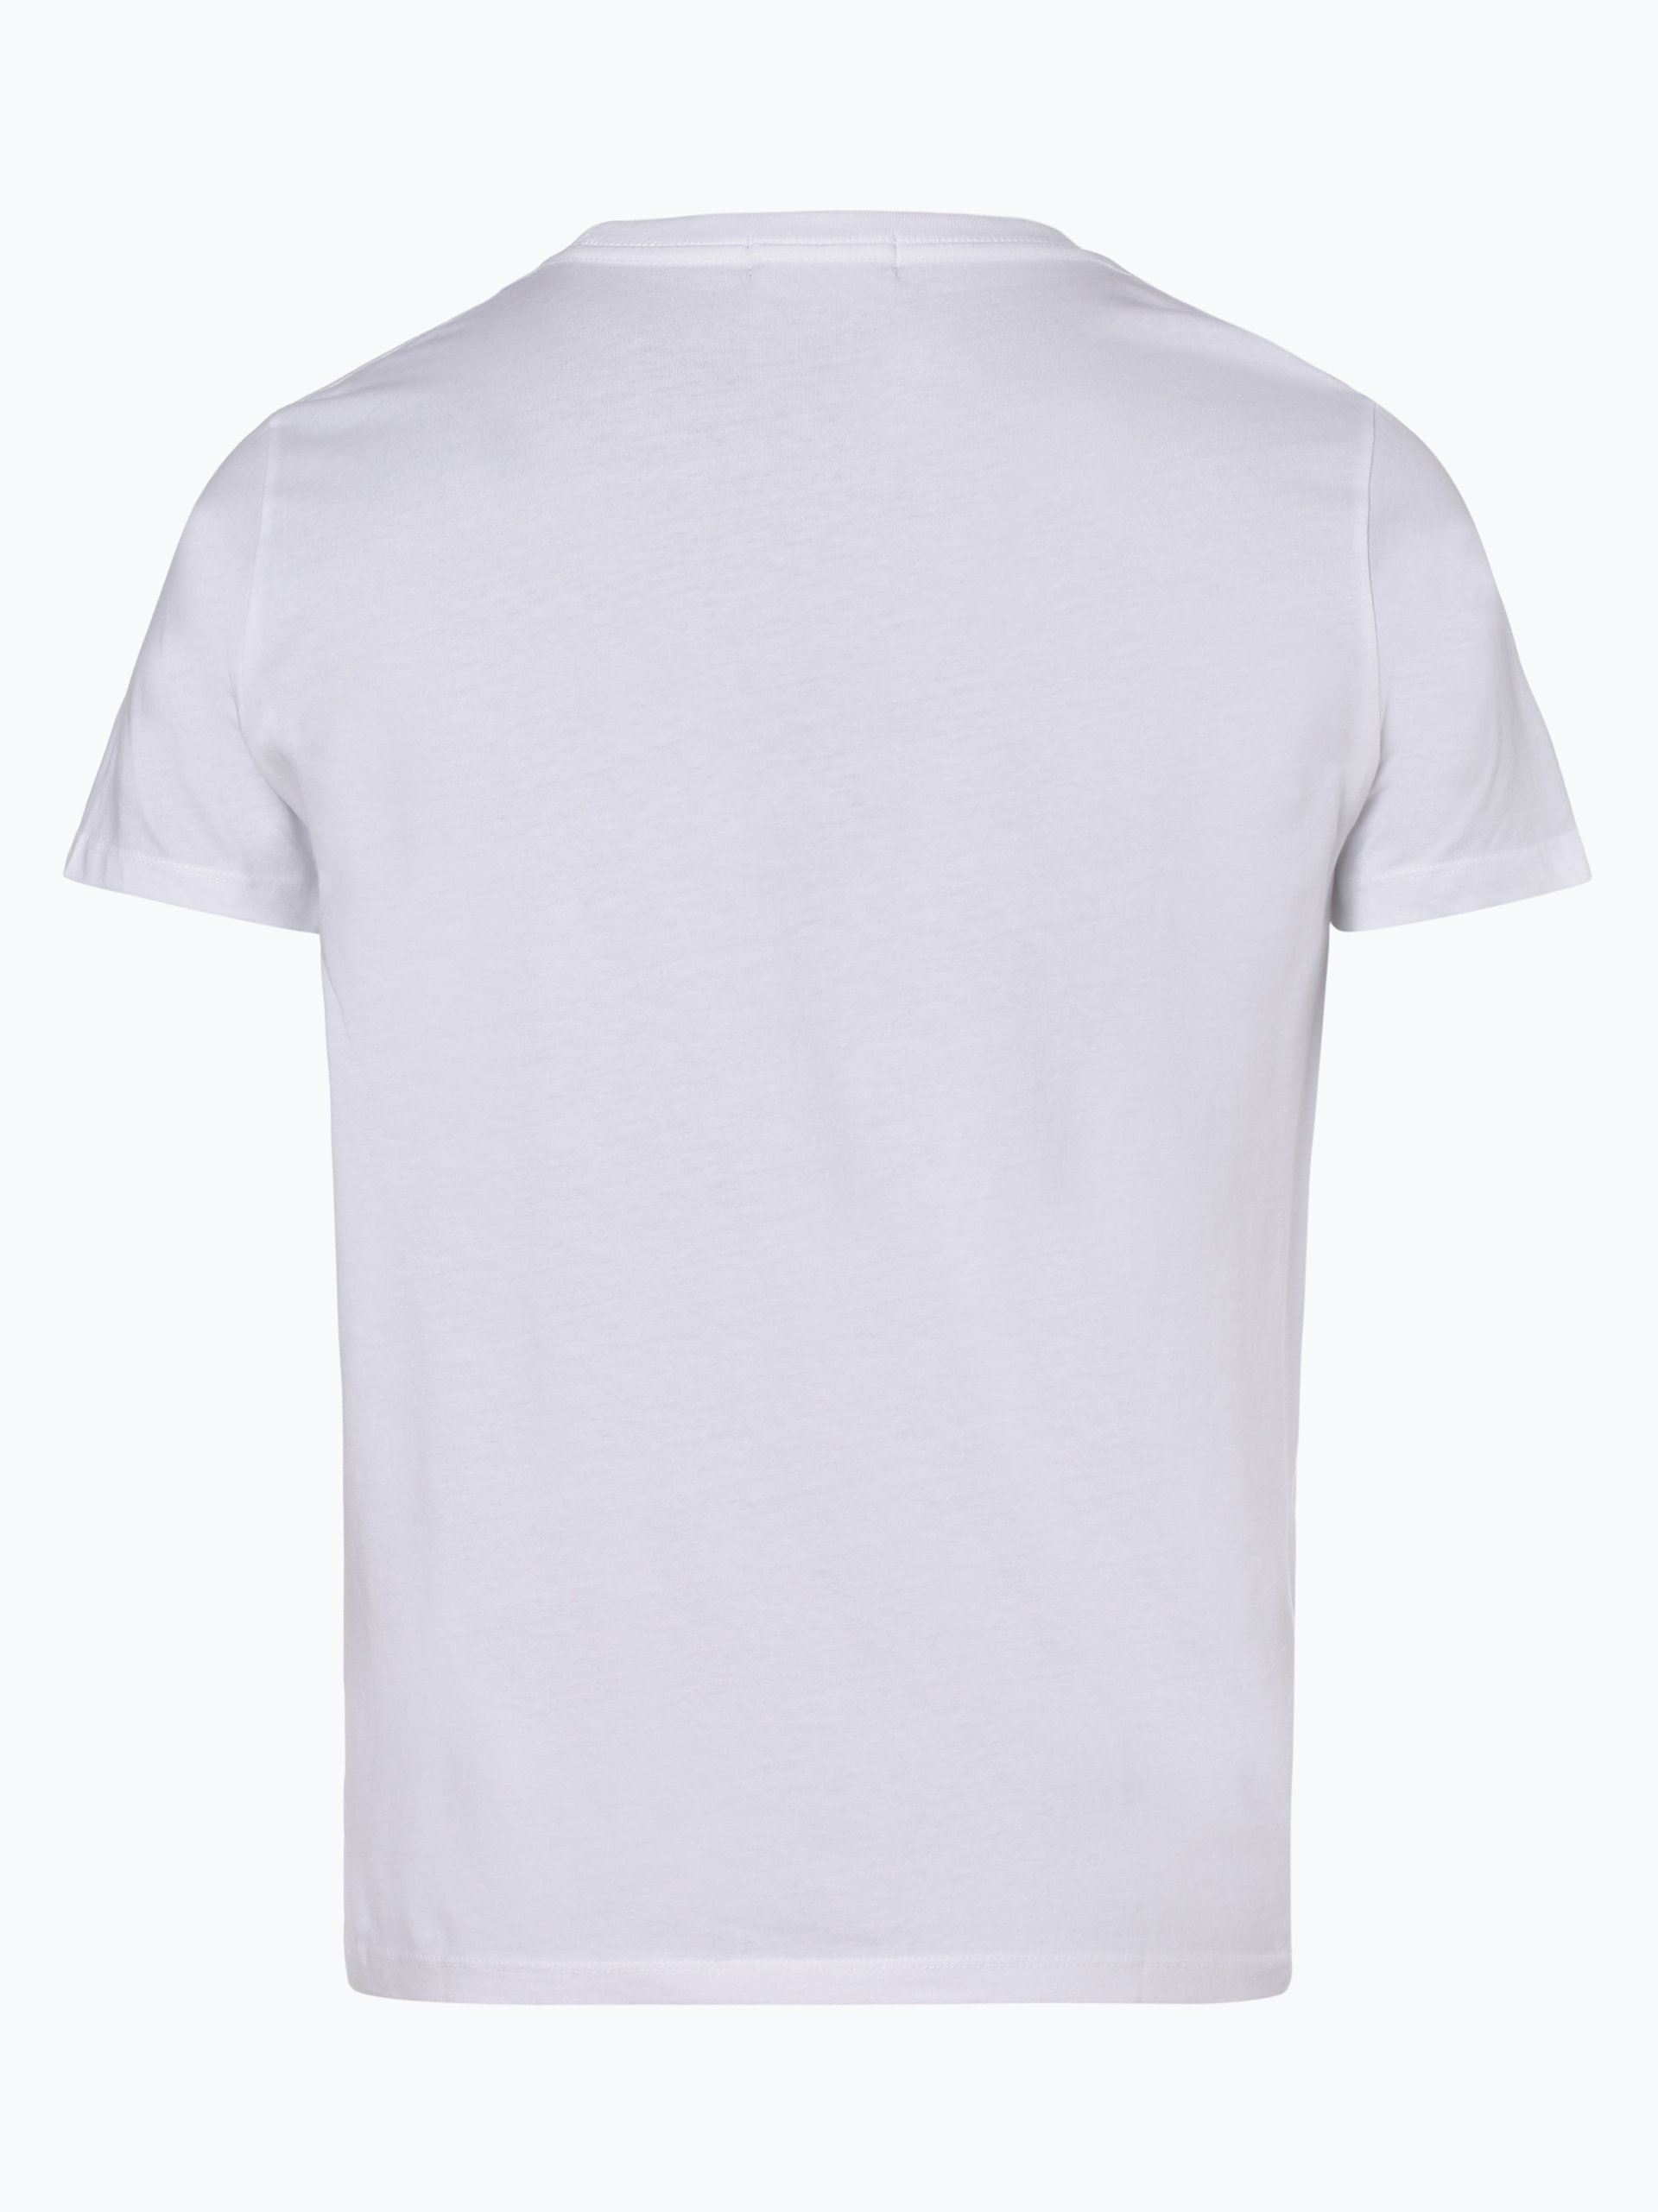 Replay Herren T-Shirt